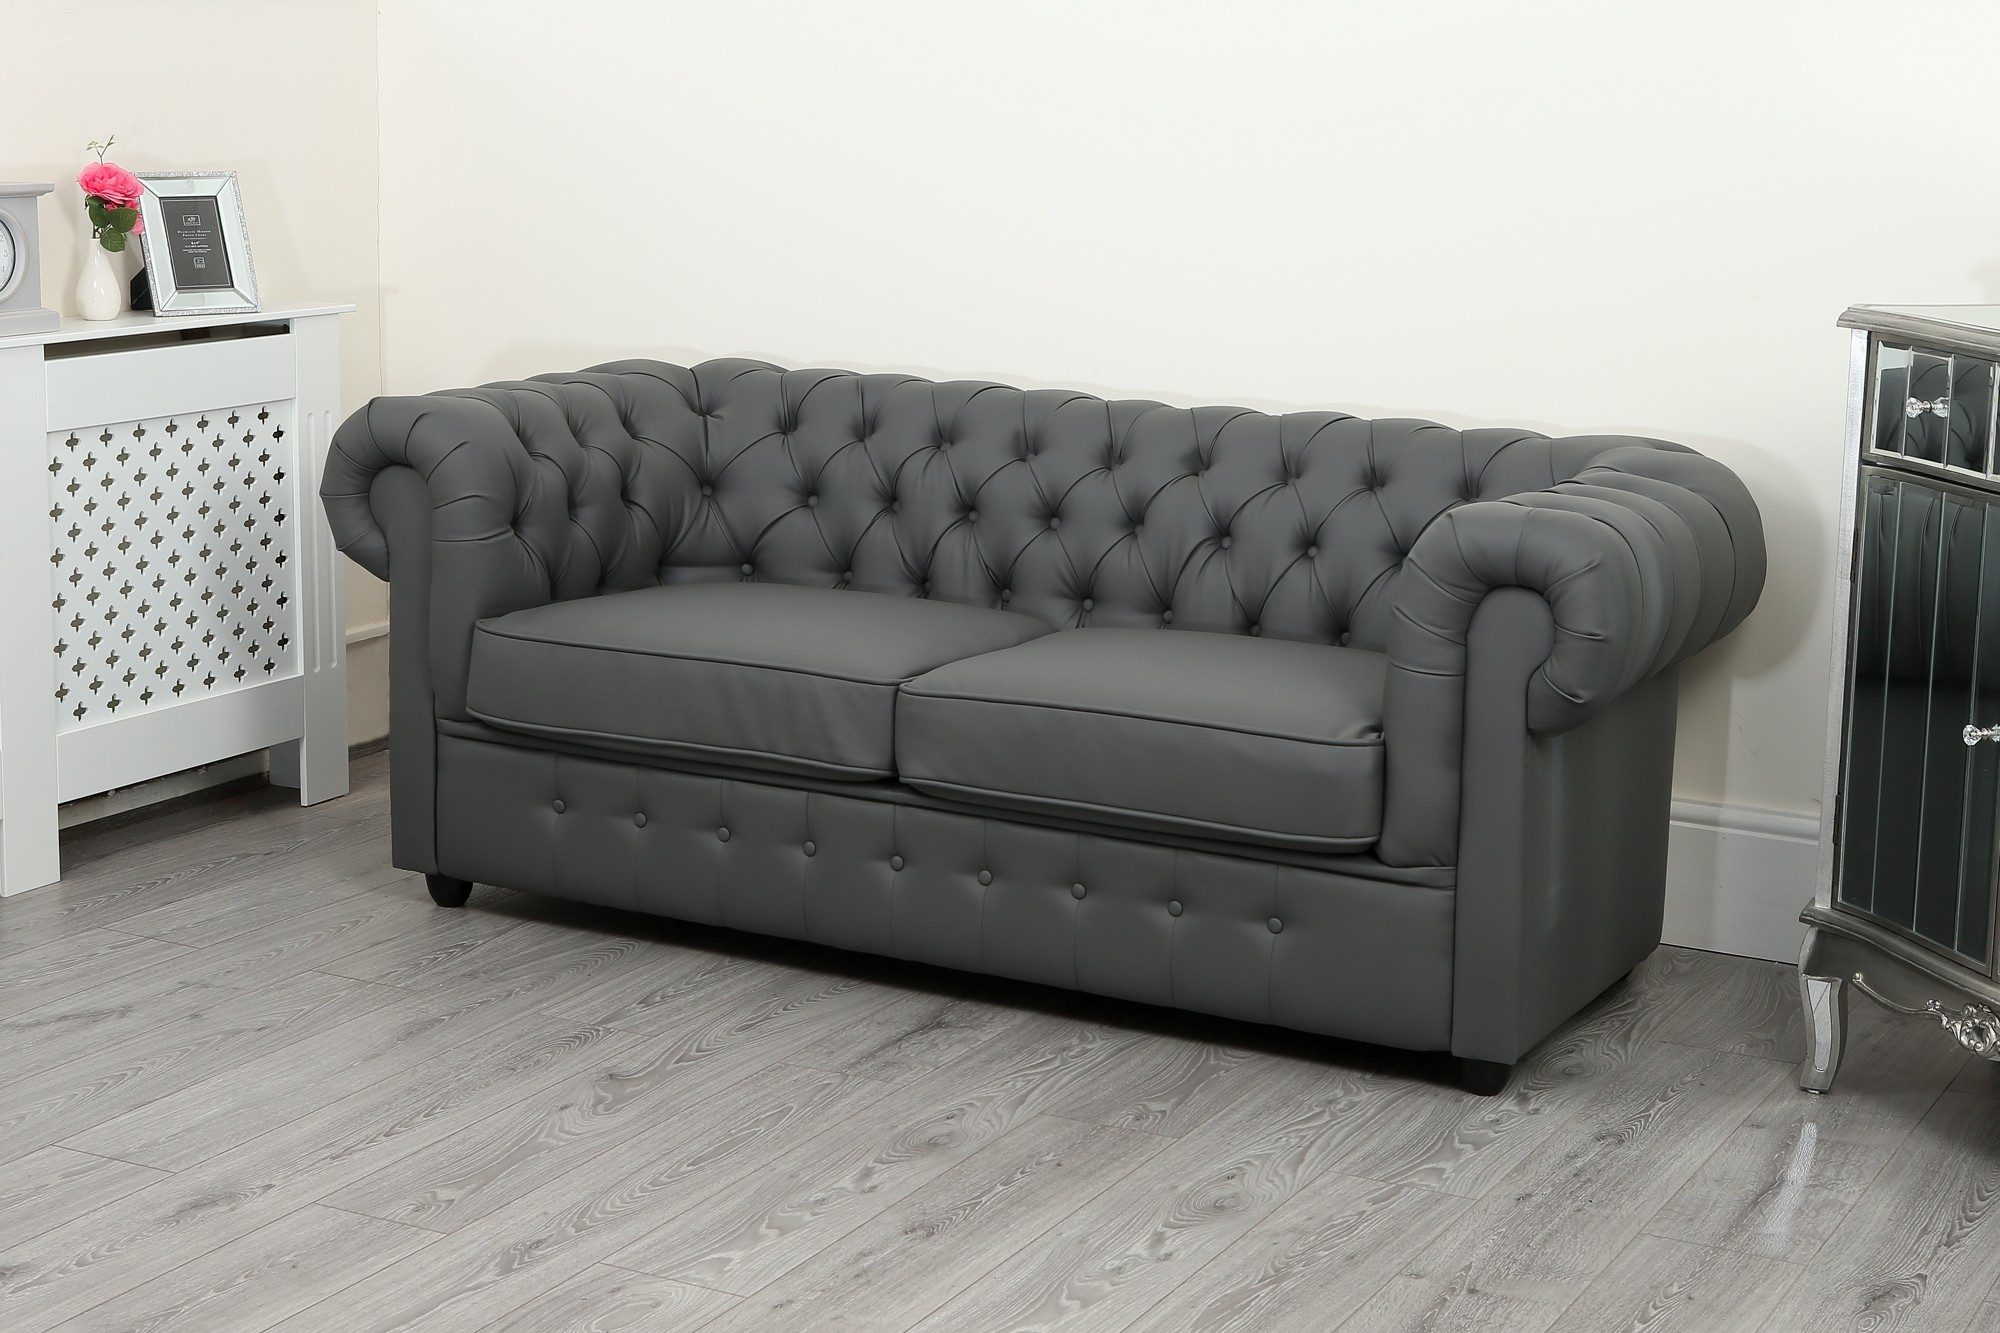 Empire Grey Faux Leather Chesterfield Sofa Suite Abreo Within Leather Chesterfield Sofas (View 10 of 15)